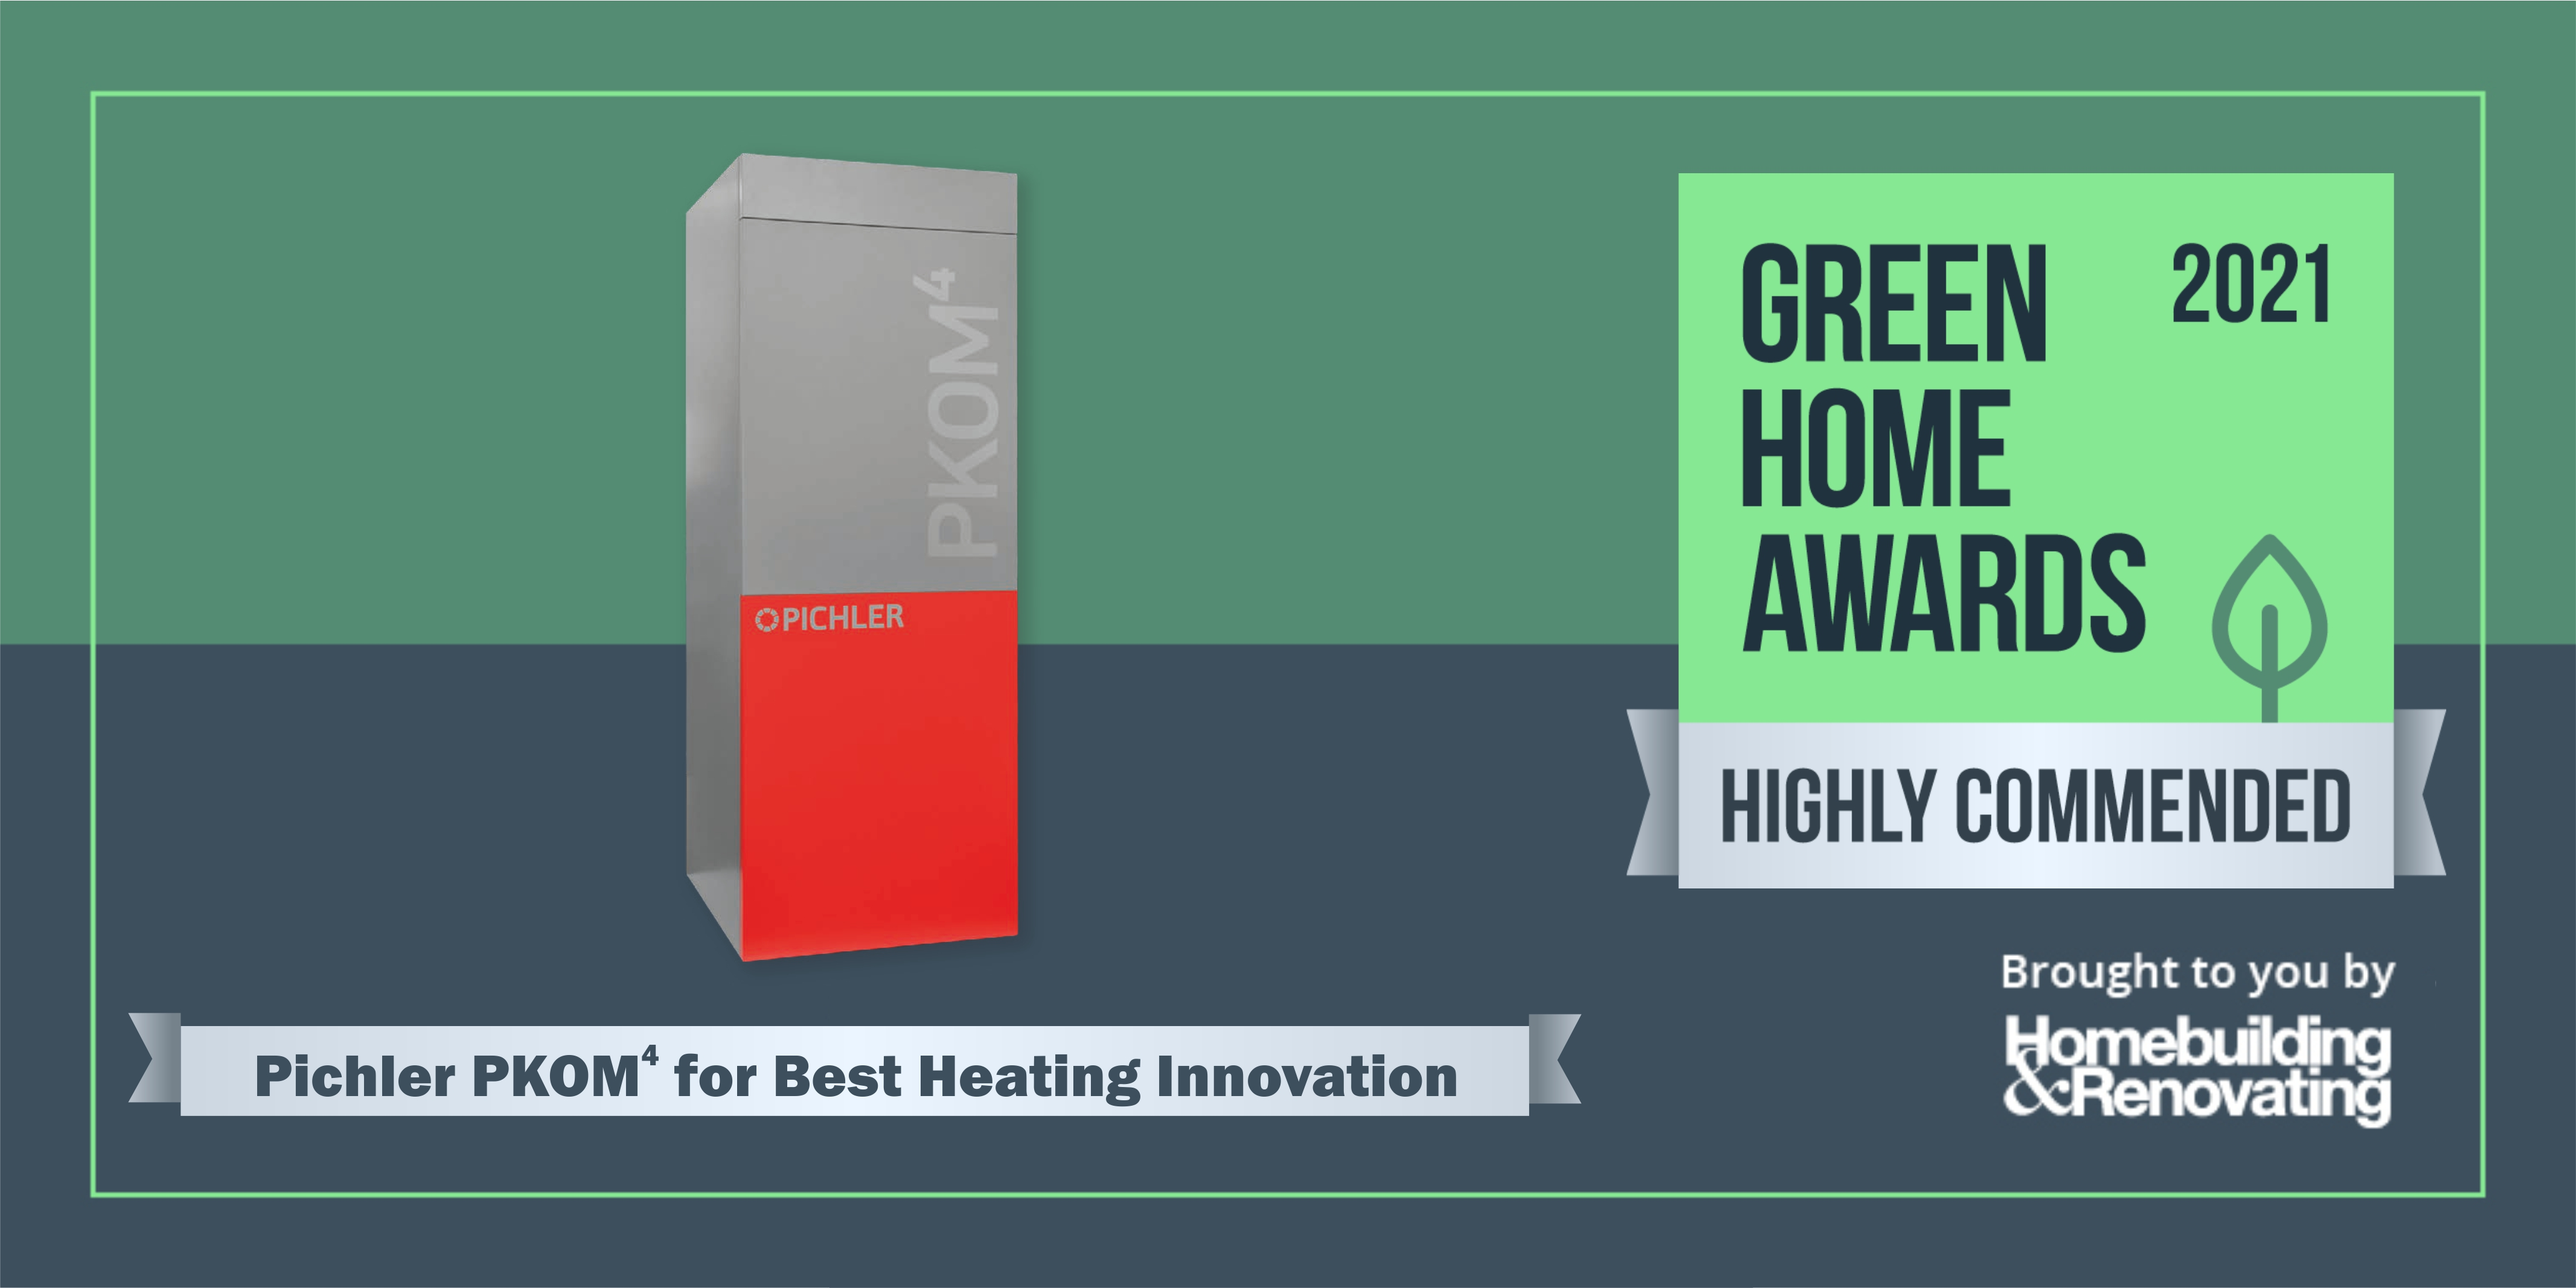 PKOM 4 Highly Commended in Green Home Awards